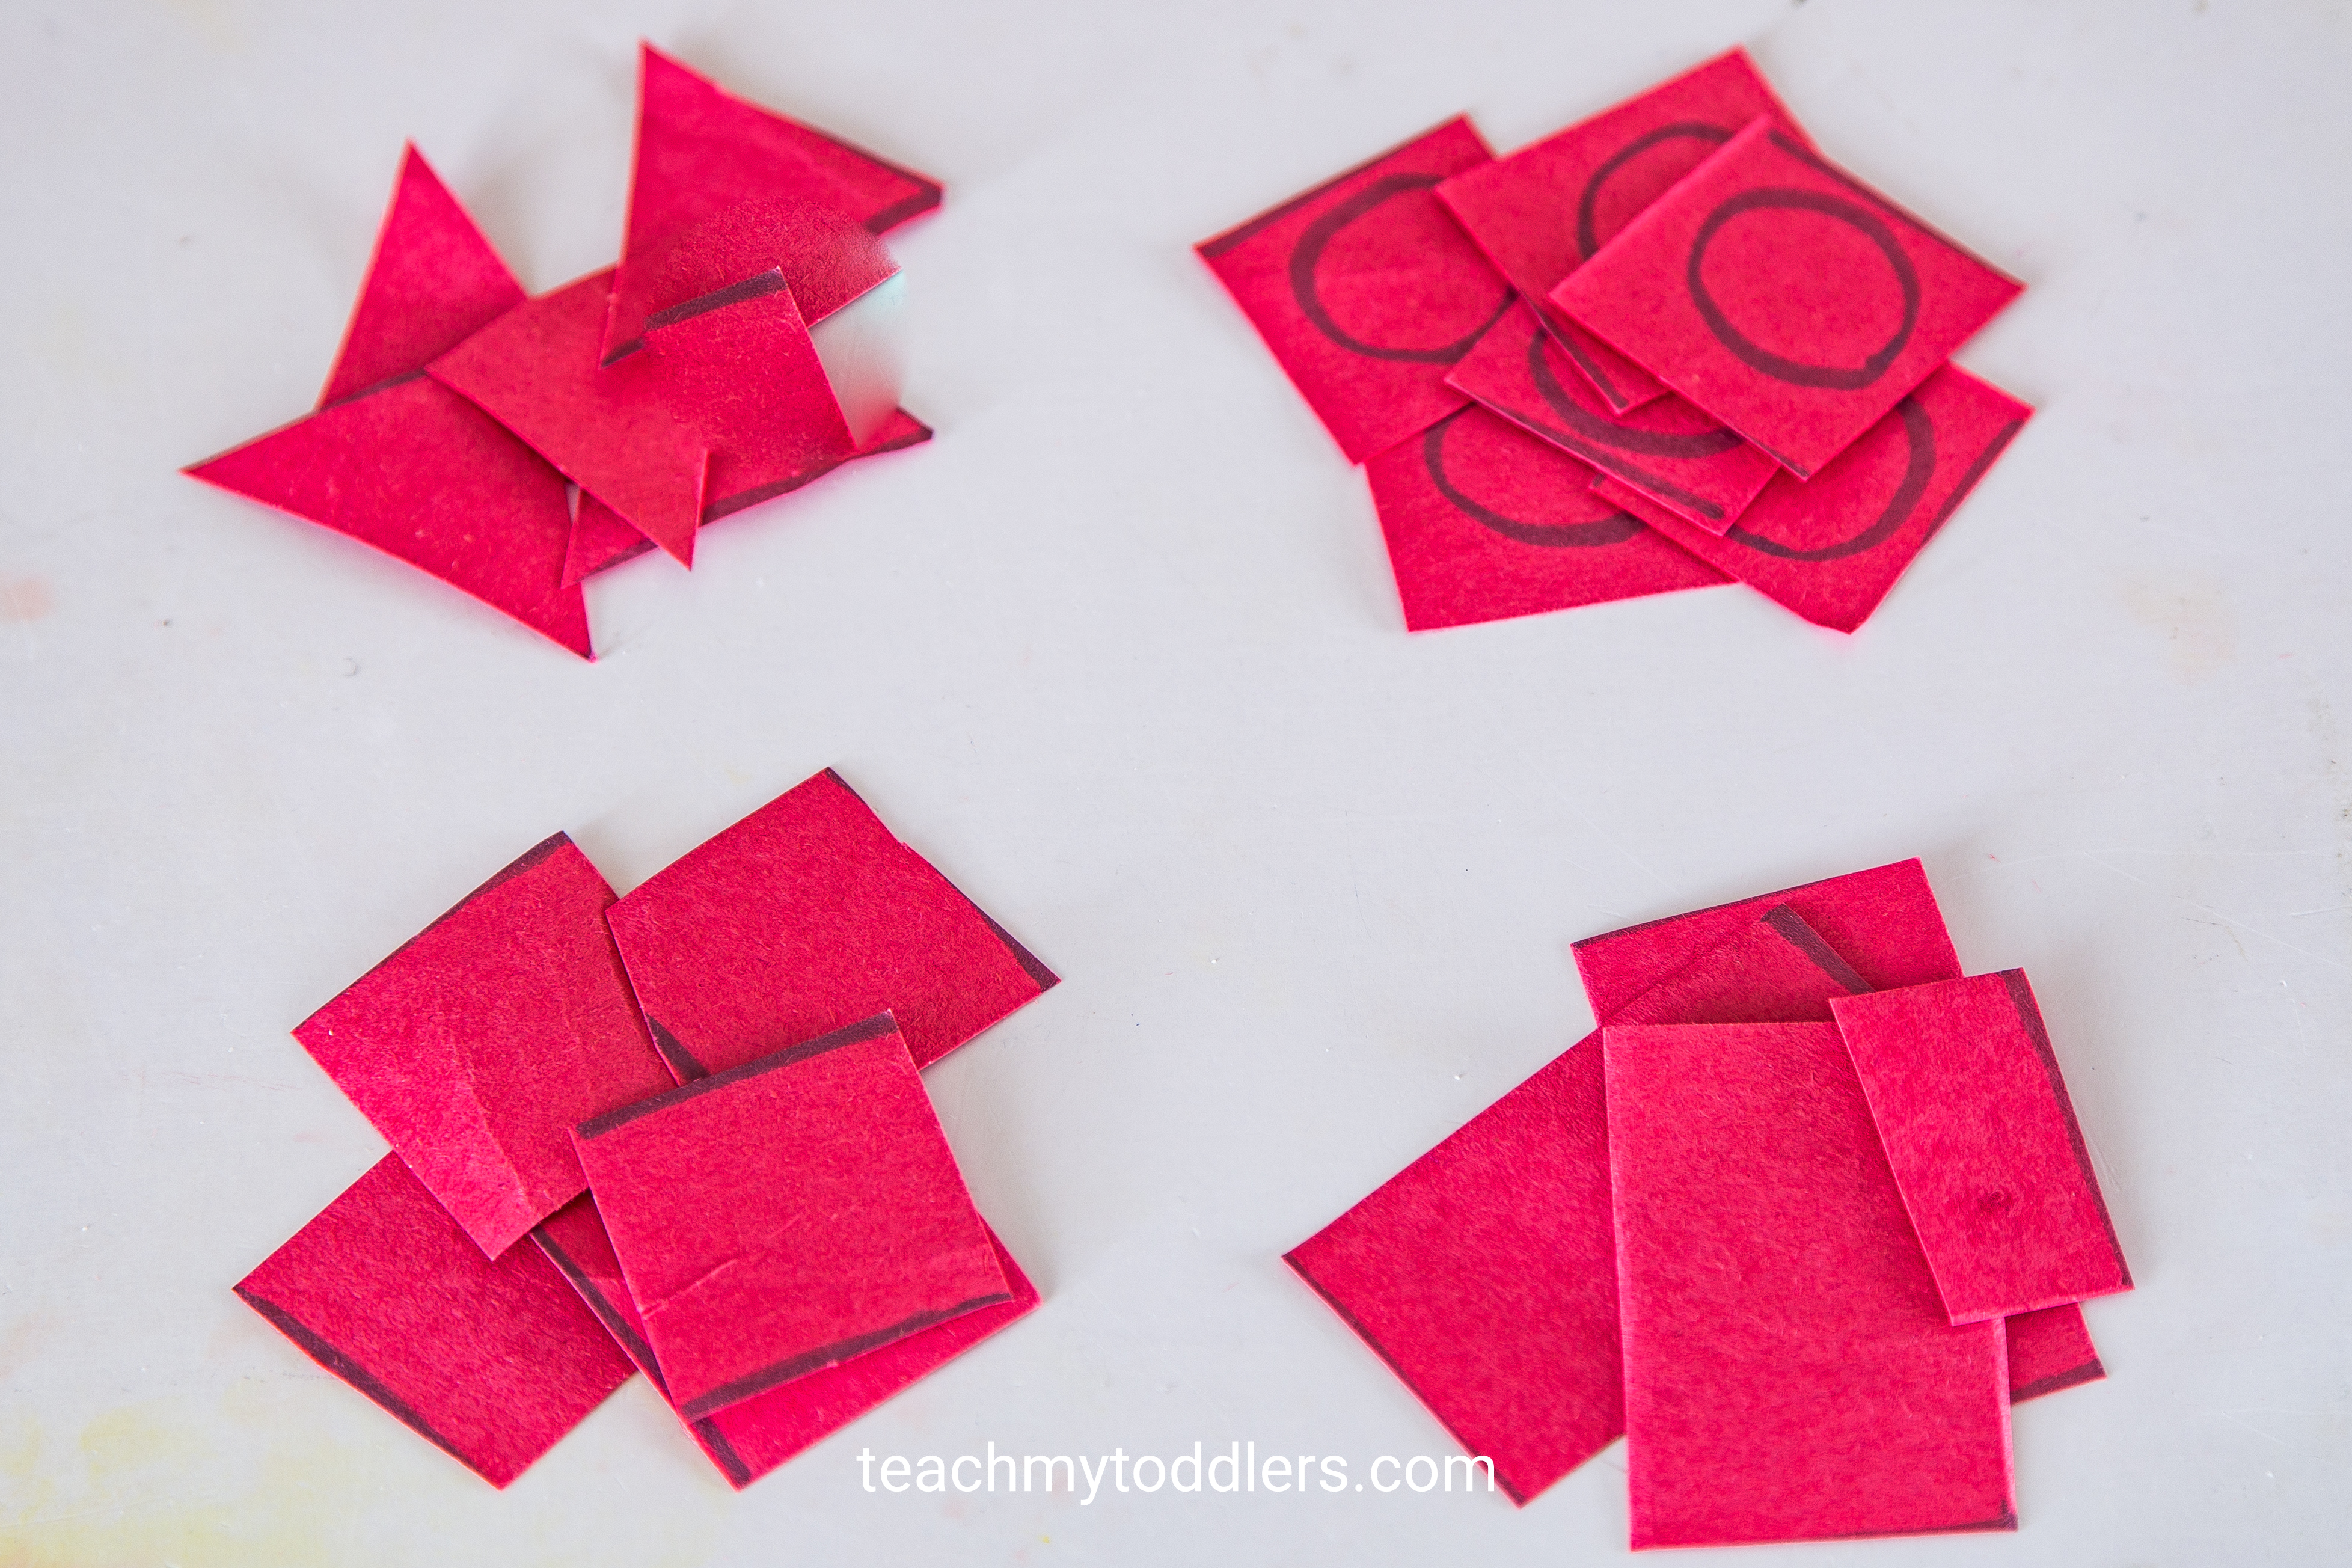 Learn how to use this cutting practice to teach your toddlers shapes